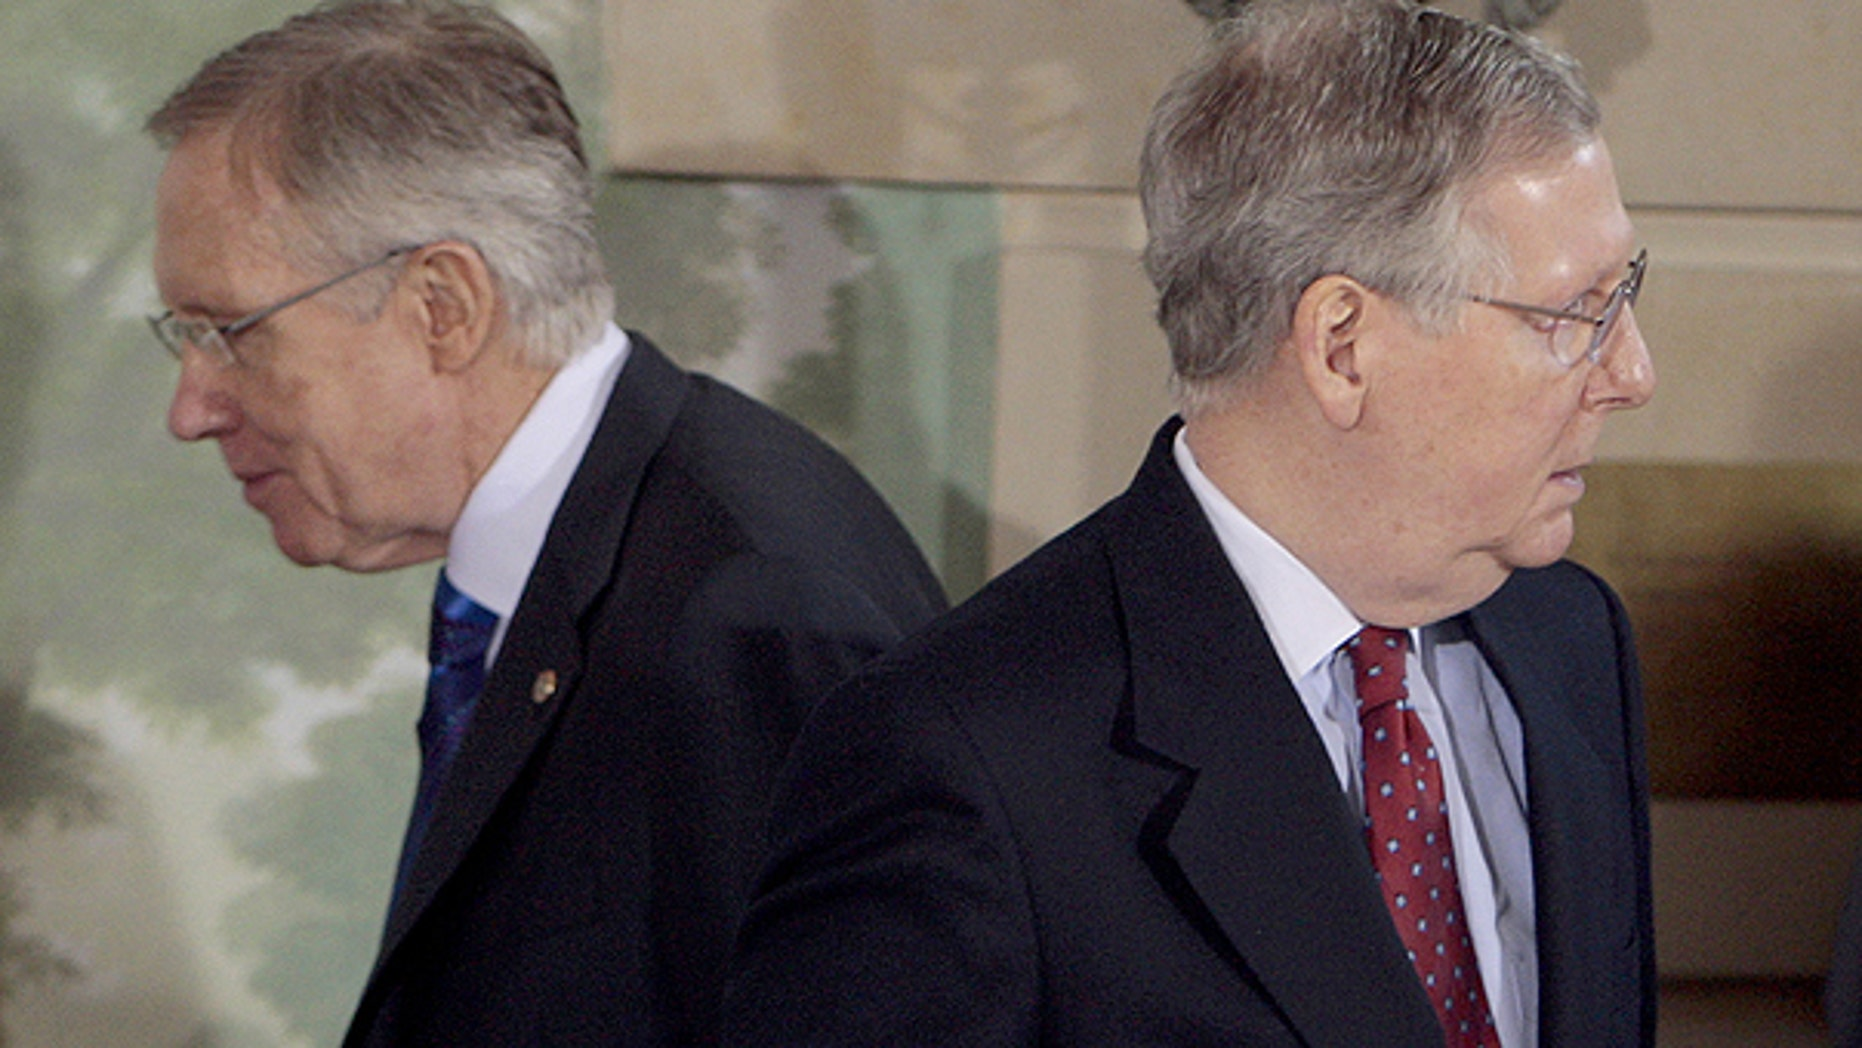 In this Feb. 25, 2010, file photo Senate Majority Leader Harry Reid of Nev., left, walks past Senate Minority Leader Mitch McConnell of Ky., during a meeting at the Blair House in Washington.